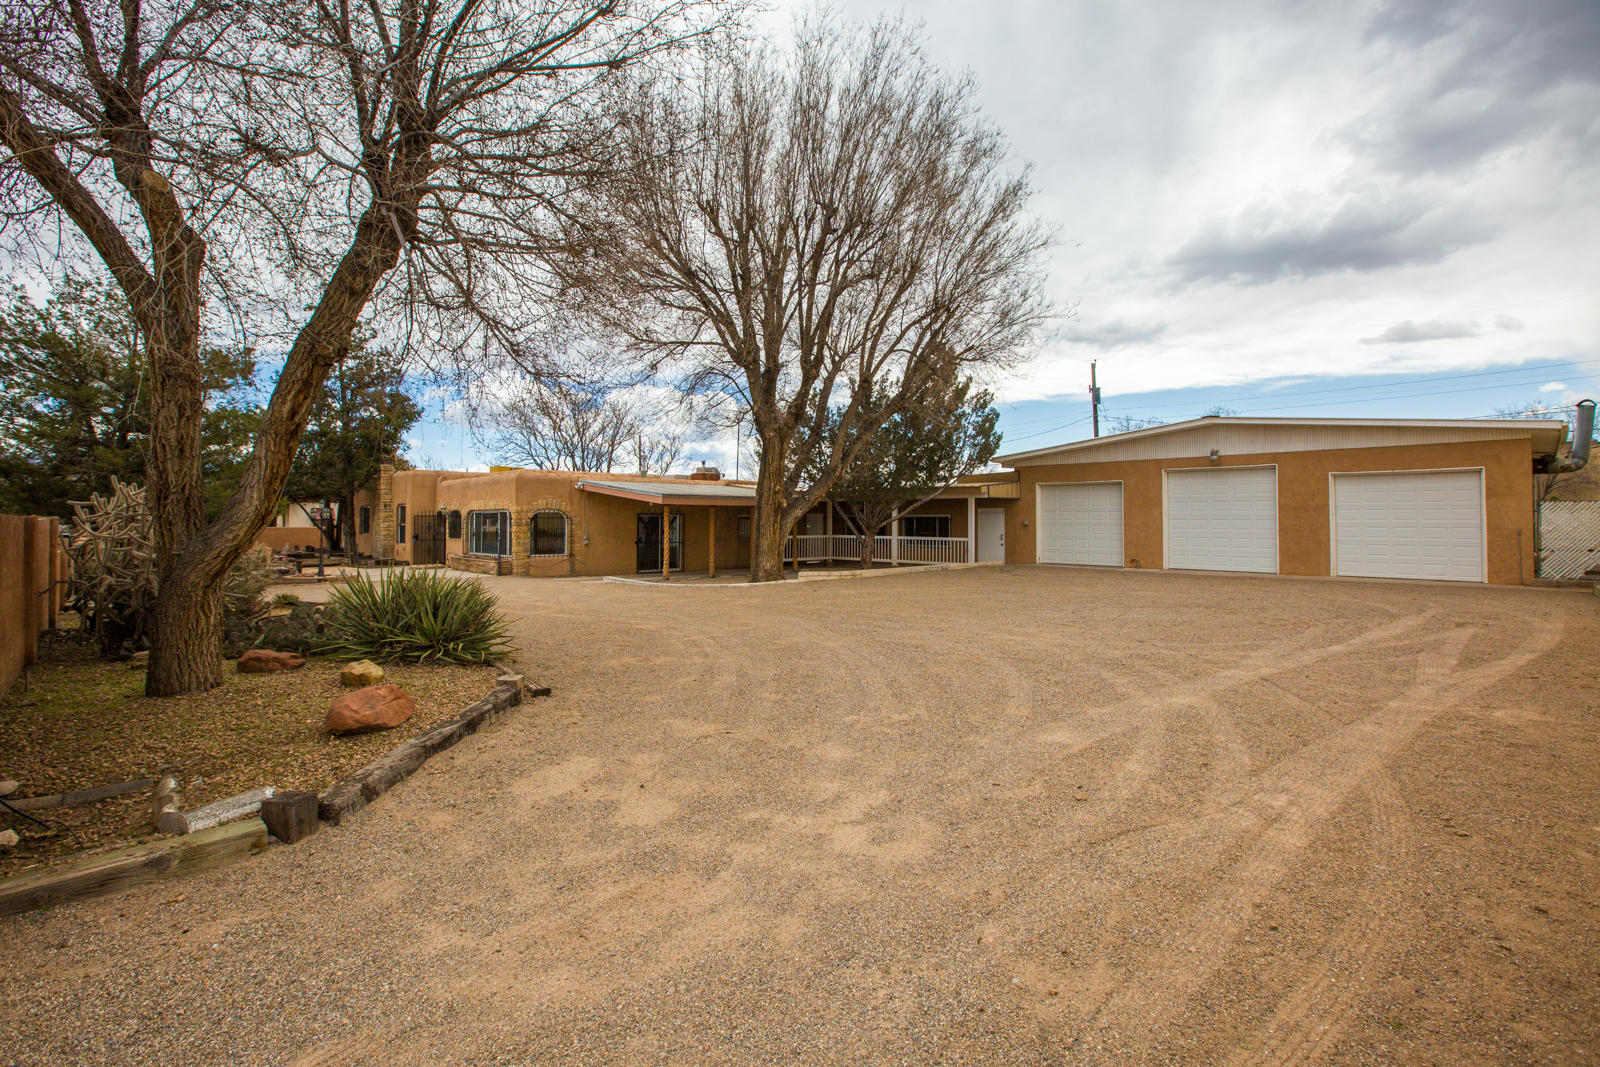 388 TYLER Road NW, Los Ranchos, NM 87107 - Los Ranchos, NM real estate listing